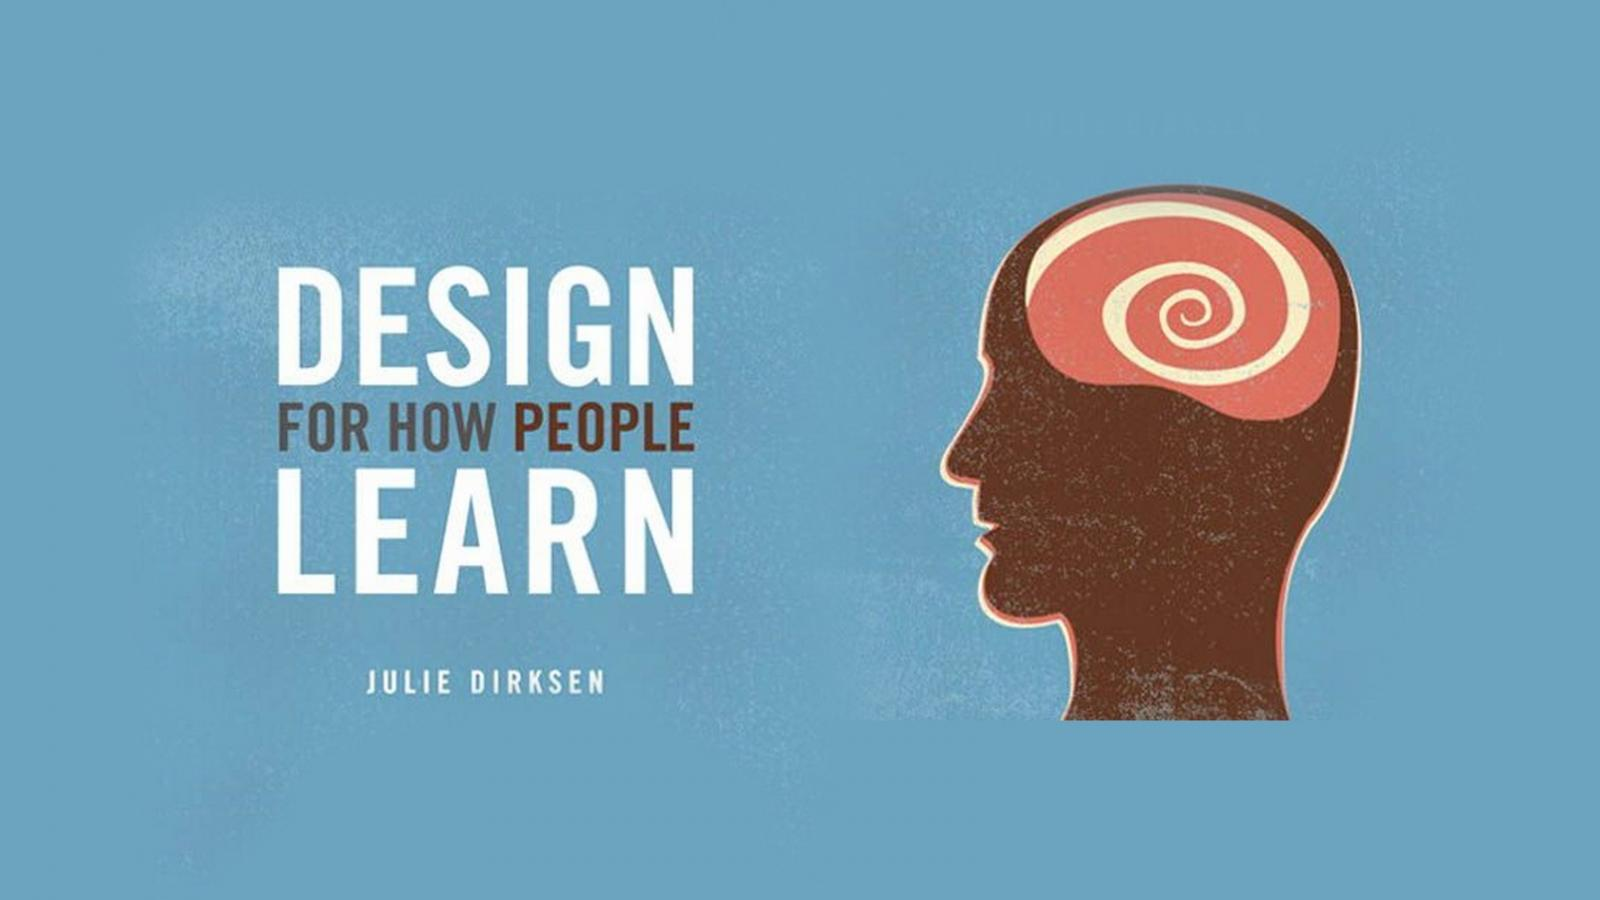 Design For How People Learn - Book Suggestion